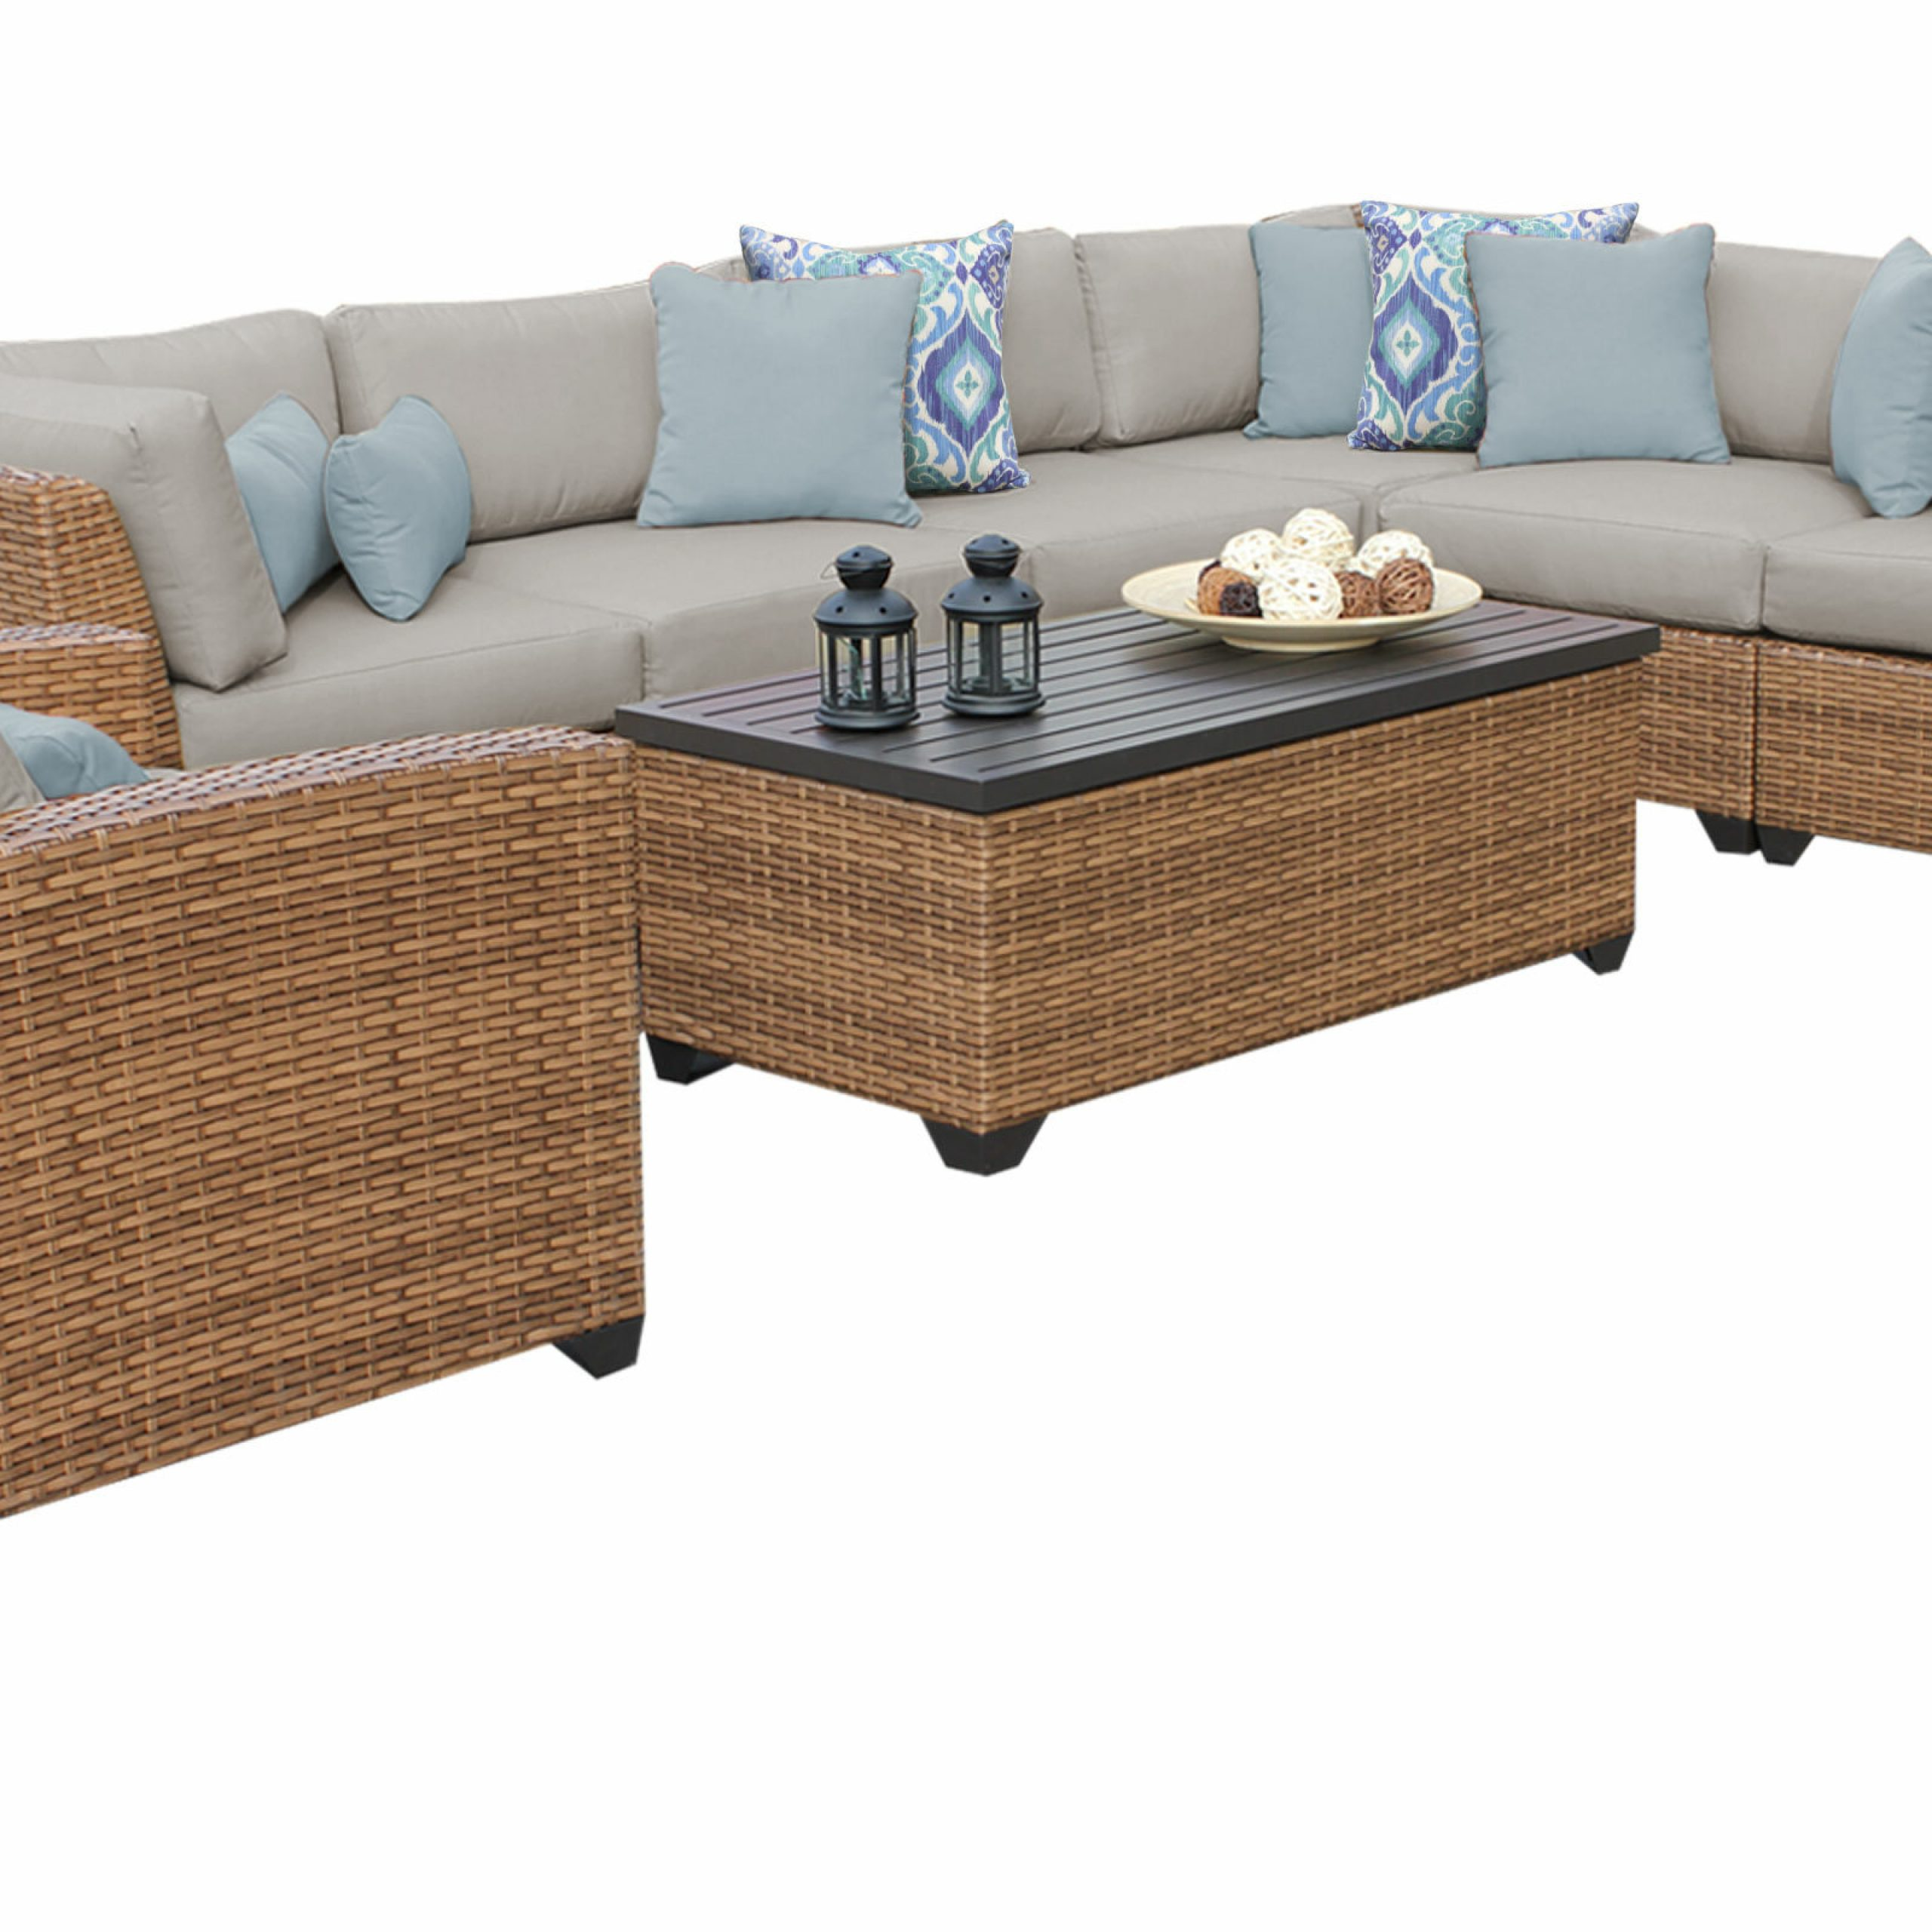 Waterbury Patio Sectionals With Cushions For Most Popular Waterbury 8 Piece Rattan Sectional Seating Group With Cushions (Gallery 15 of 25)